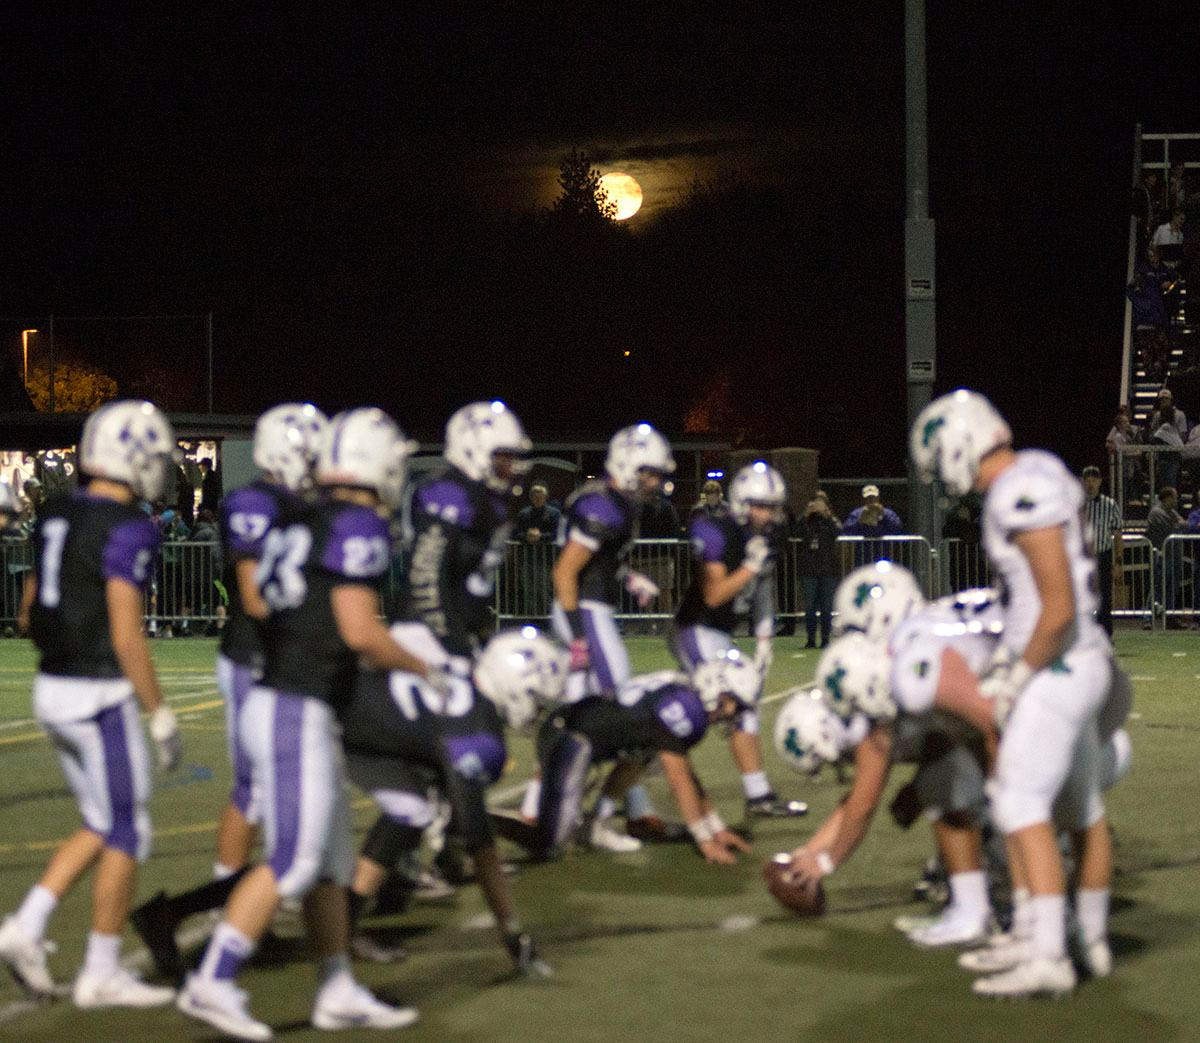 South Eugene Axemen players and Sheldon Irish players gather at the line of scrimmage under the harvest moon. Sheldon Irish defeated South Eugene Axemen 63-6 on Friday night at South Eugene Highschool in Eugene, Ore. Photo by Rhianna Gelhart, Oregon News Lab